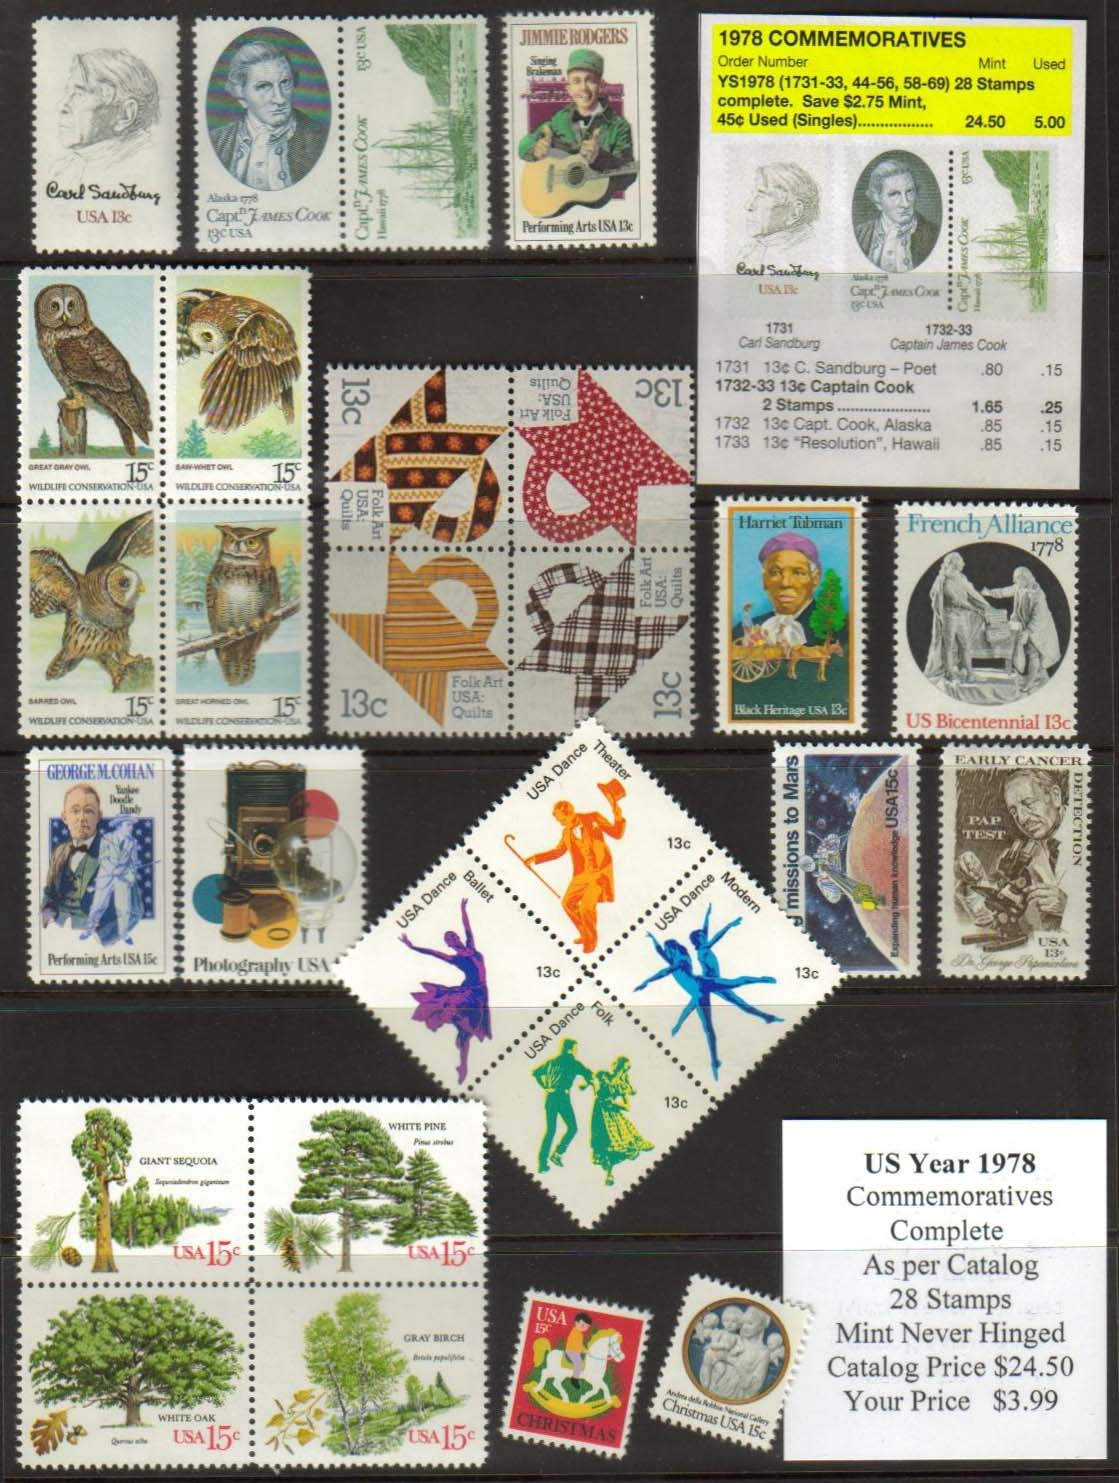 1978 COMMEMORATIVES, 28 STAMPS